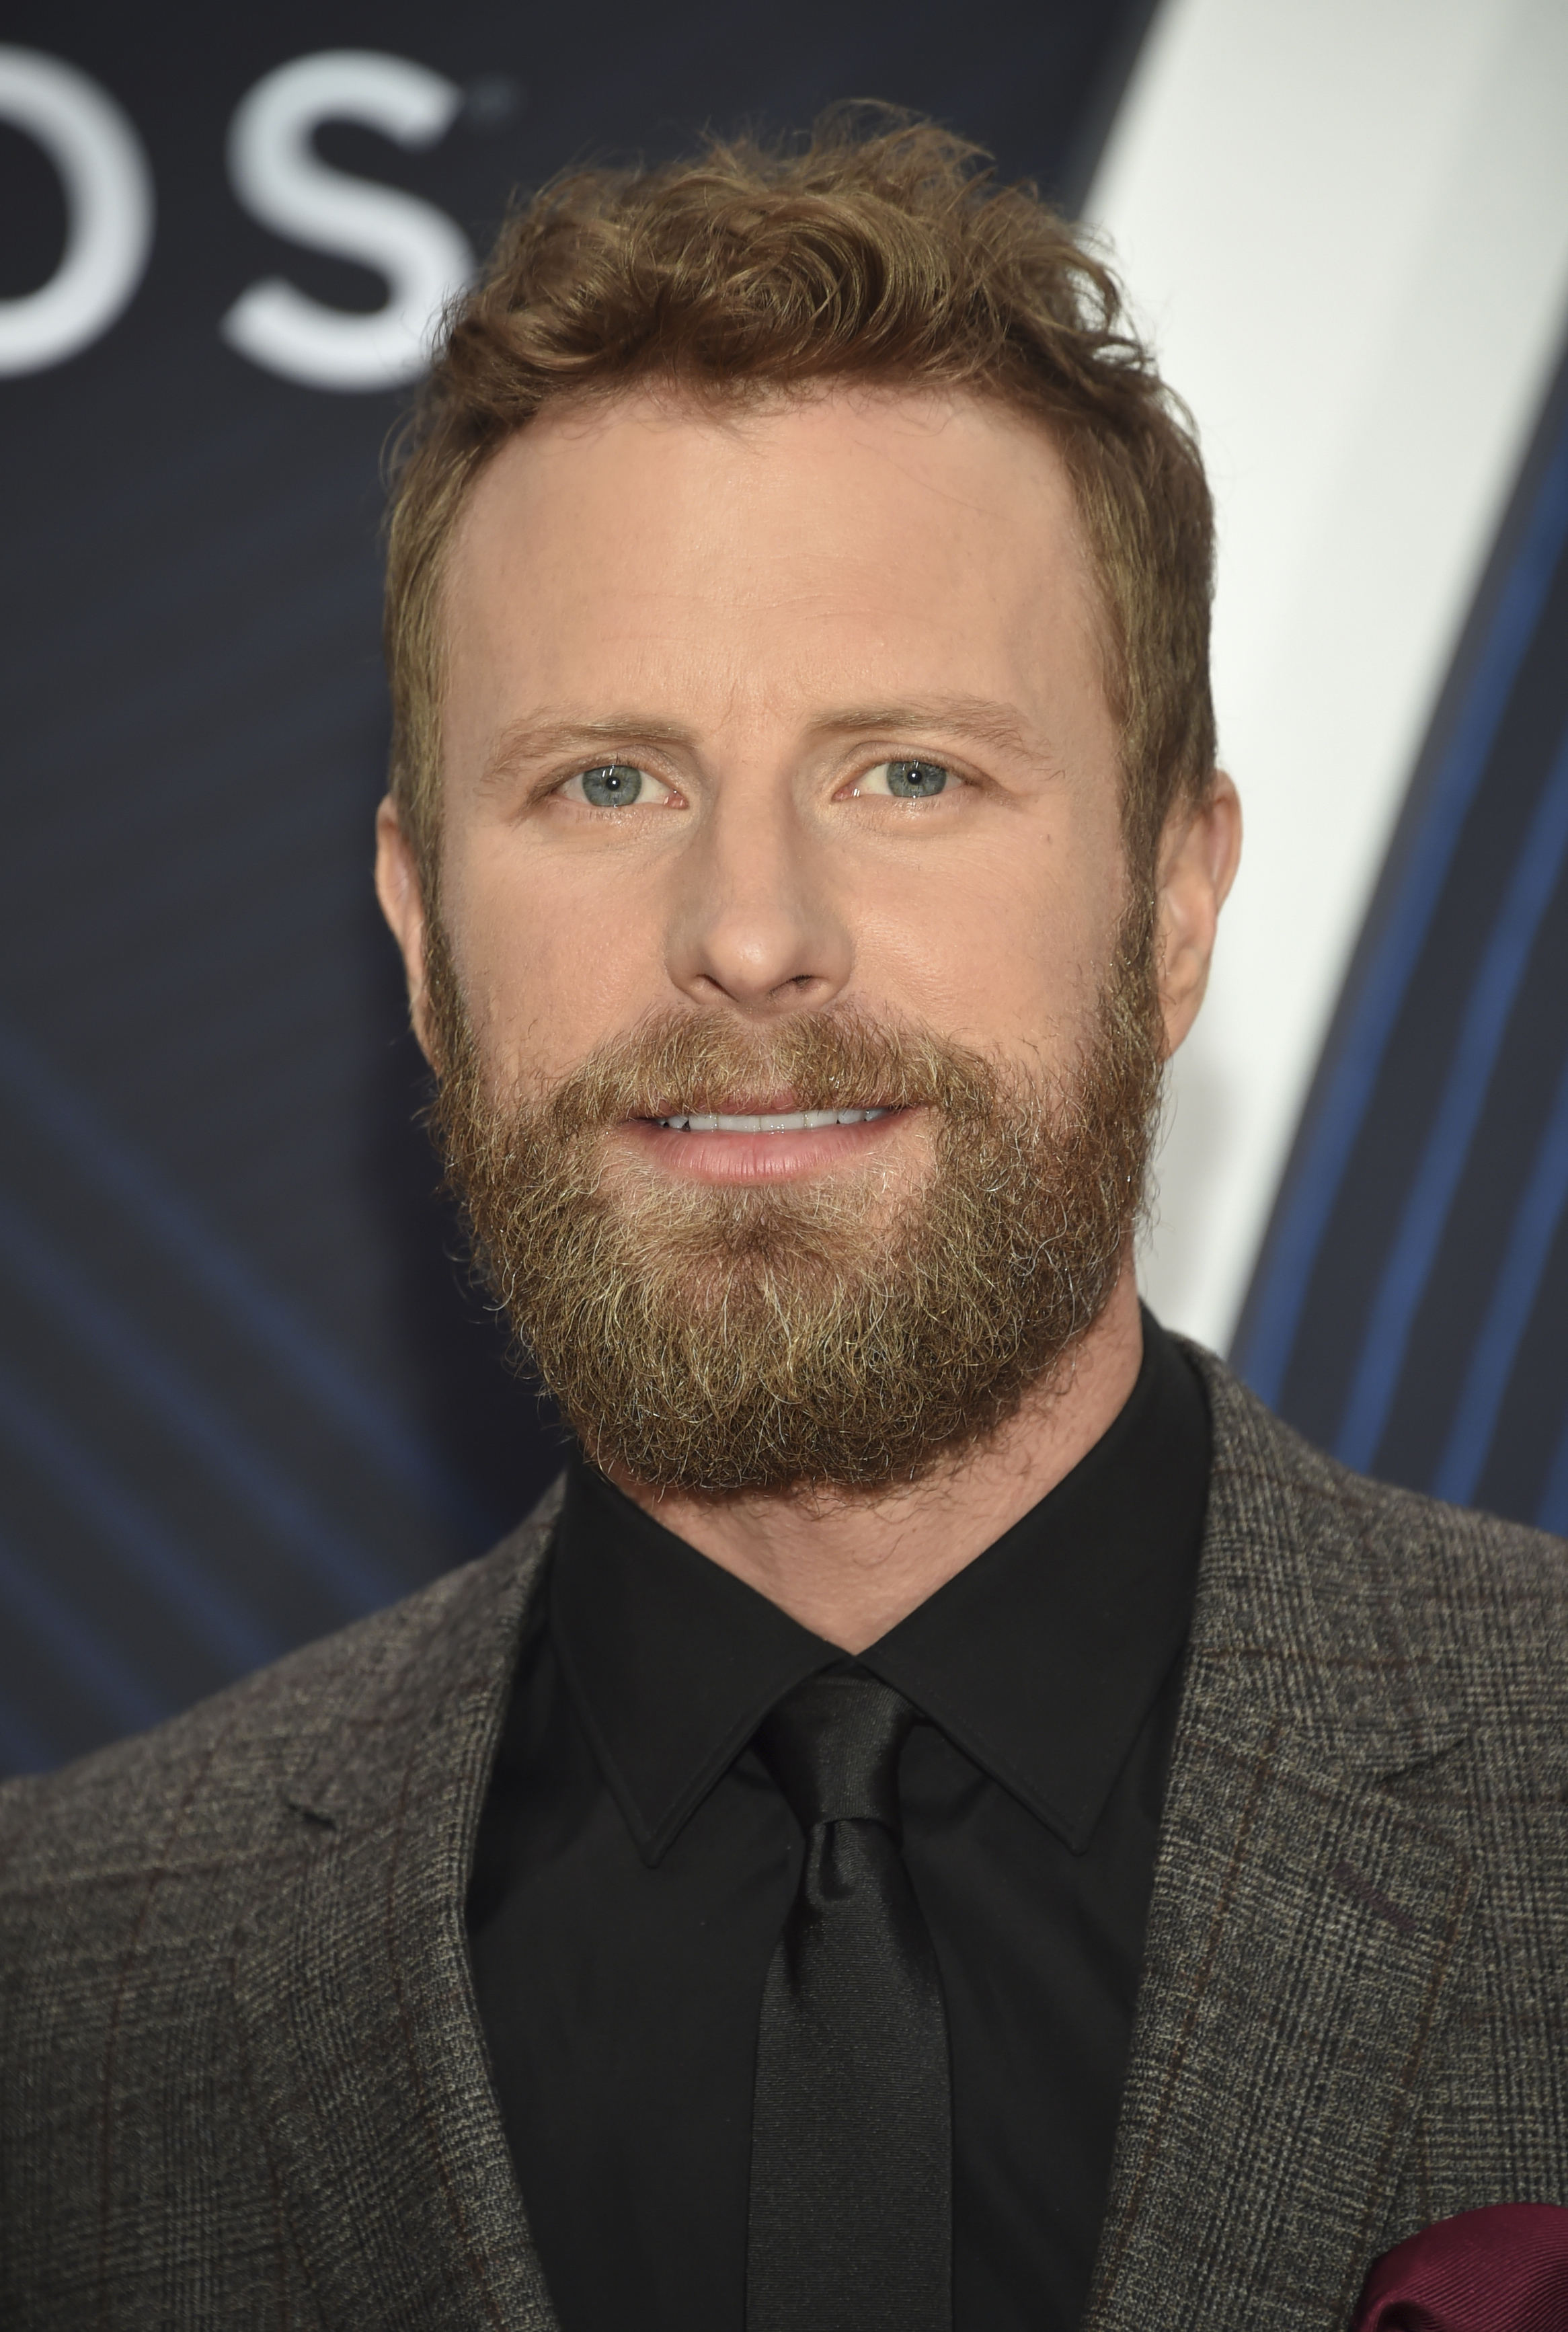 "<div class=""meta image-caption""><div class=""origin-logo origin-image ap""><span>AP</span></div><span class=""caption-text"">Dierks Bentley arrives at the 52nd annual CMA Awards at Bridgestone Arena on Wednesday, Nov. 14, 2018, in Nashville, Tenn. (Photo by Evan Agostini/Invision/AP) (Evan Agostini/Invision/AP)</span></div>"